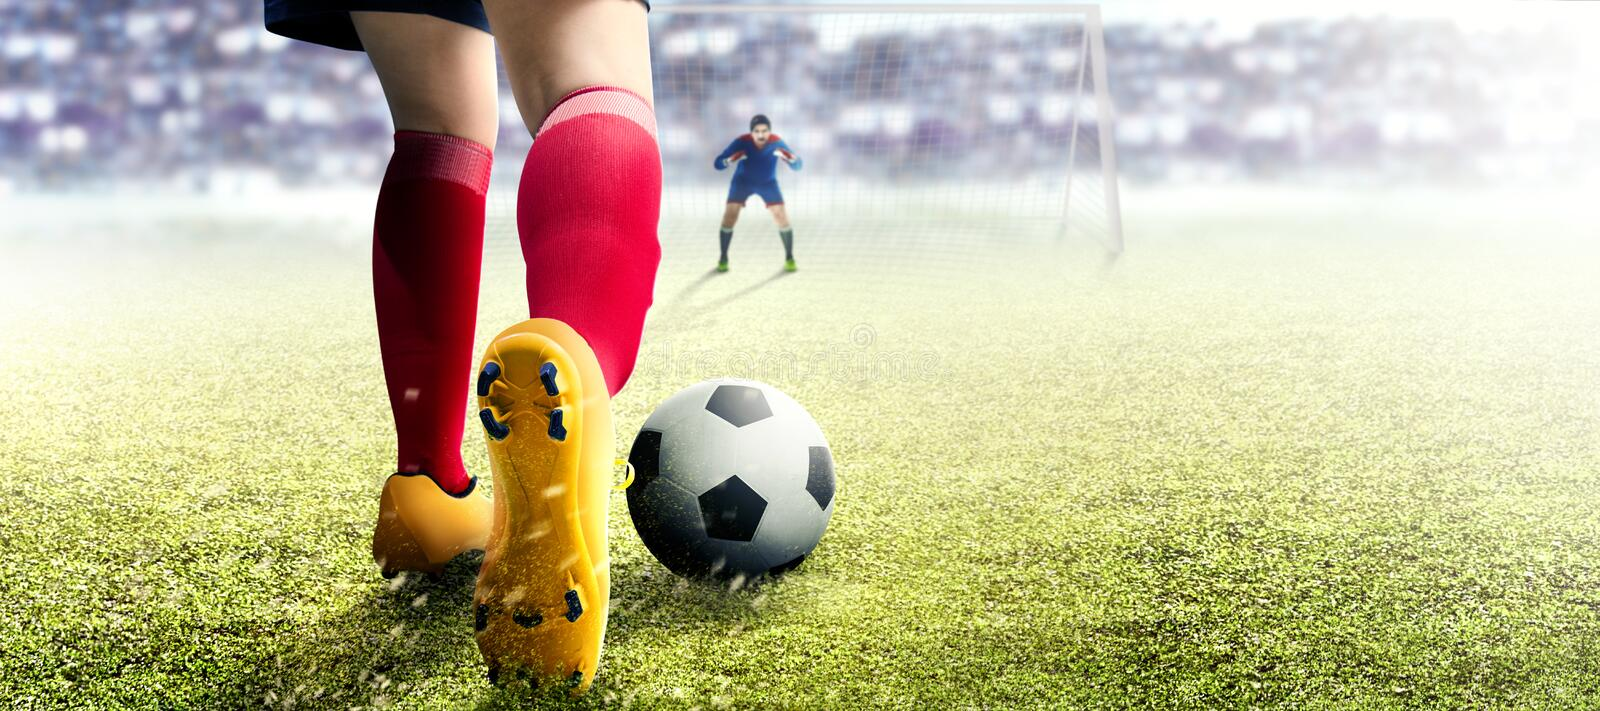 Football player woman in orange jersey kicking the ball in the penalty box. On football field stock photo